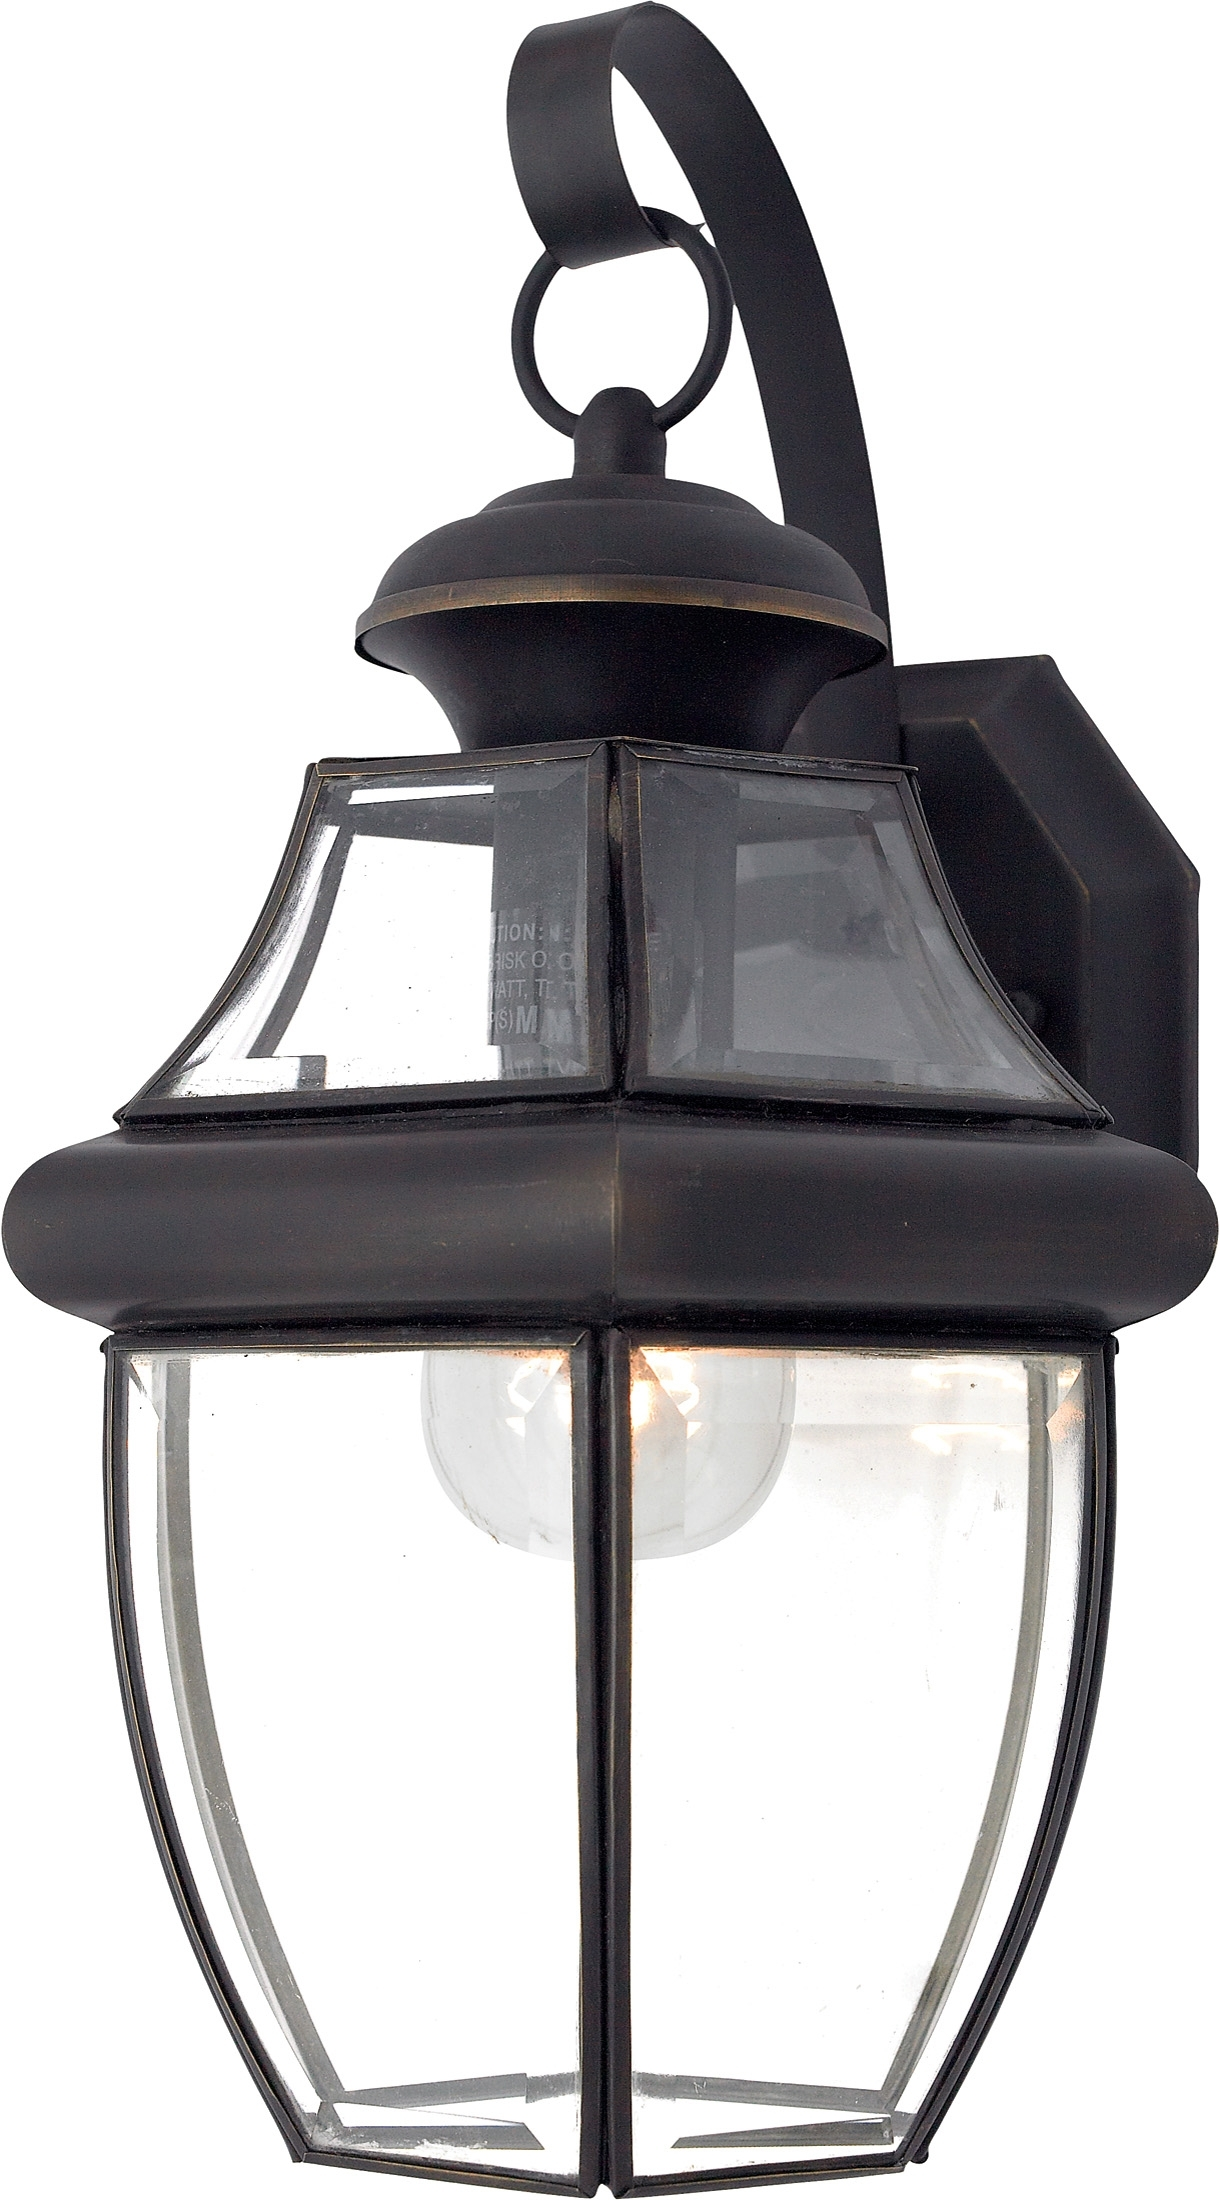 Lighting : Residential Lighting Fixtures Ceiling Lights Led Light Intended For Made In Usa Outdoor Wall Lighting (#9 of 15)